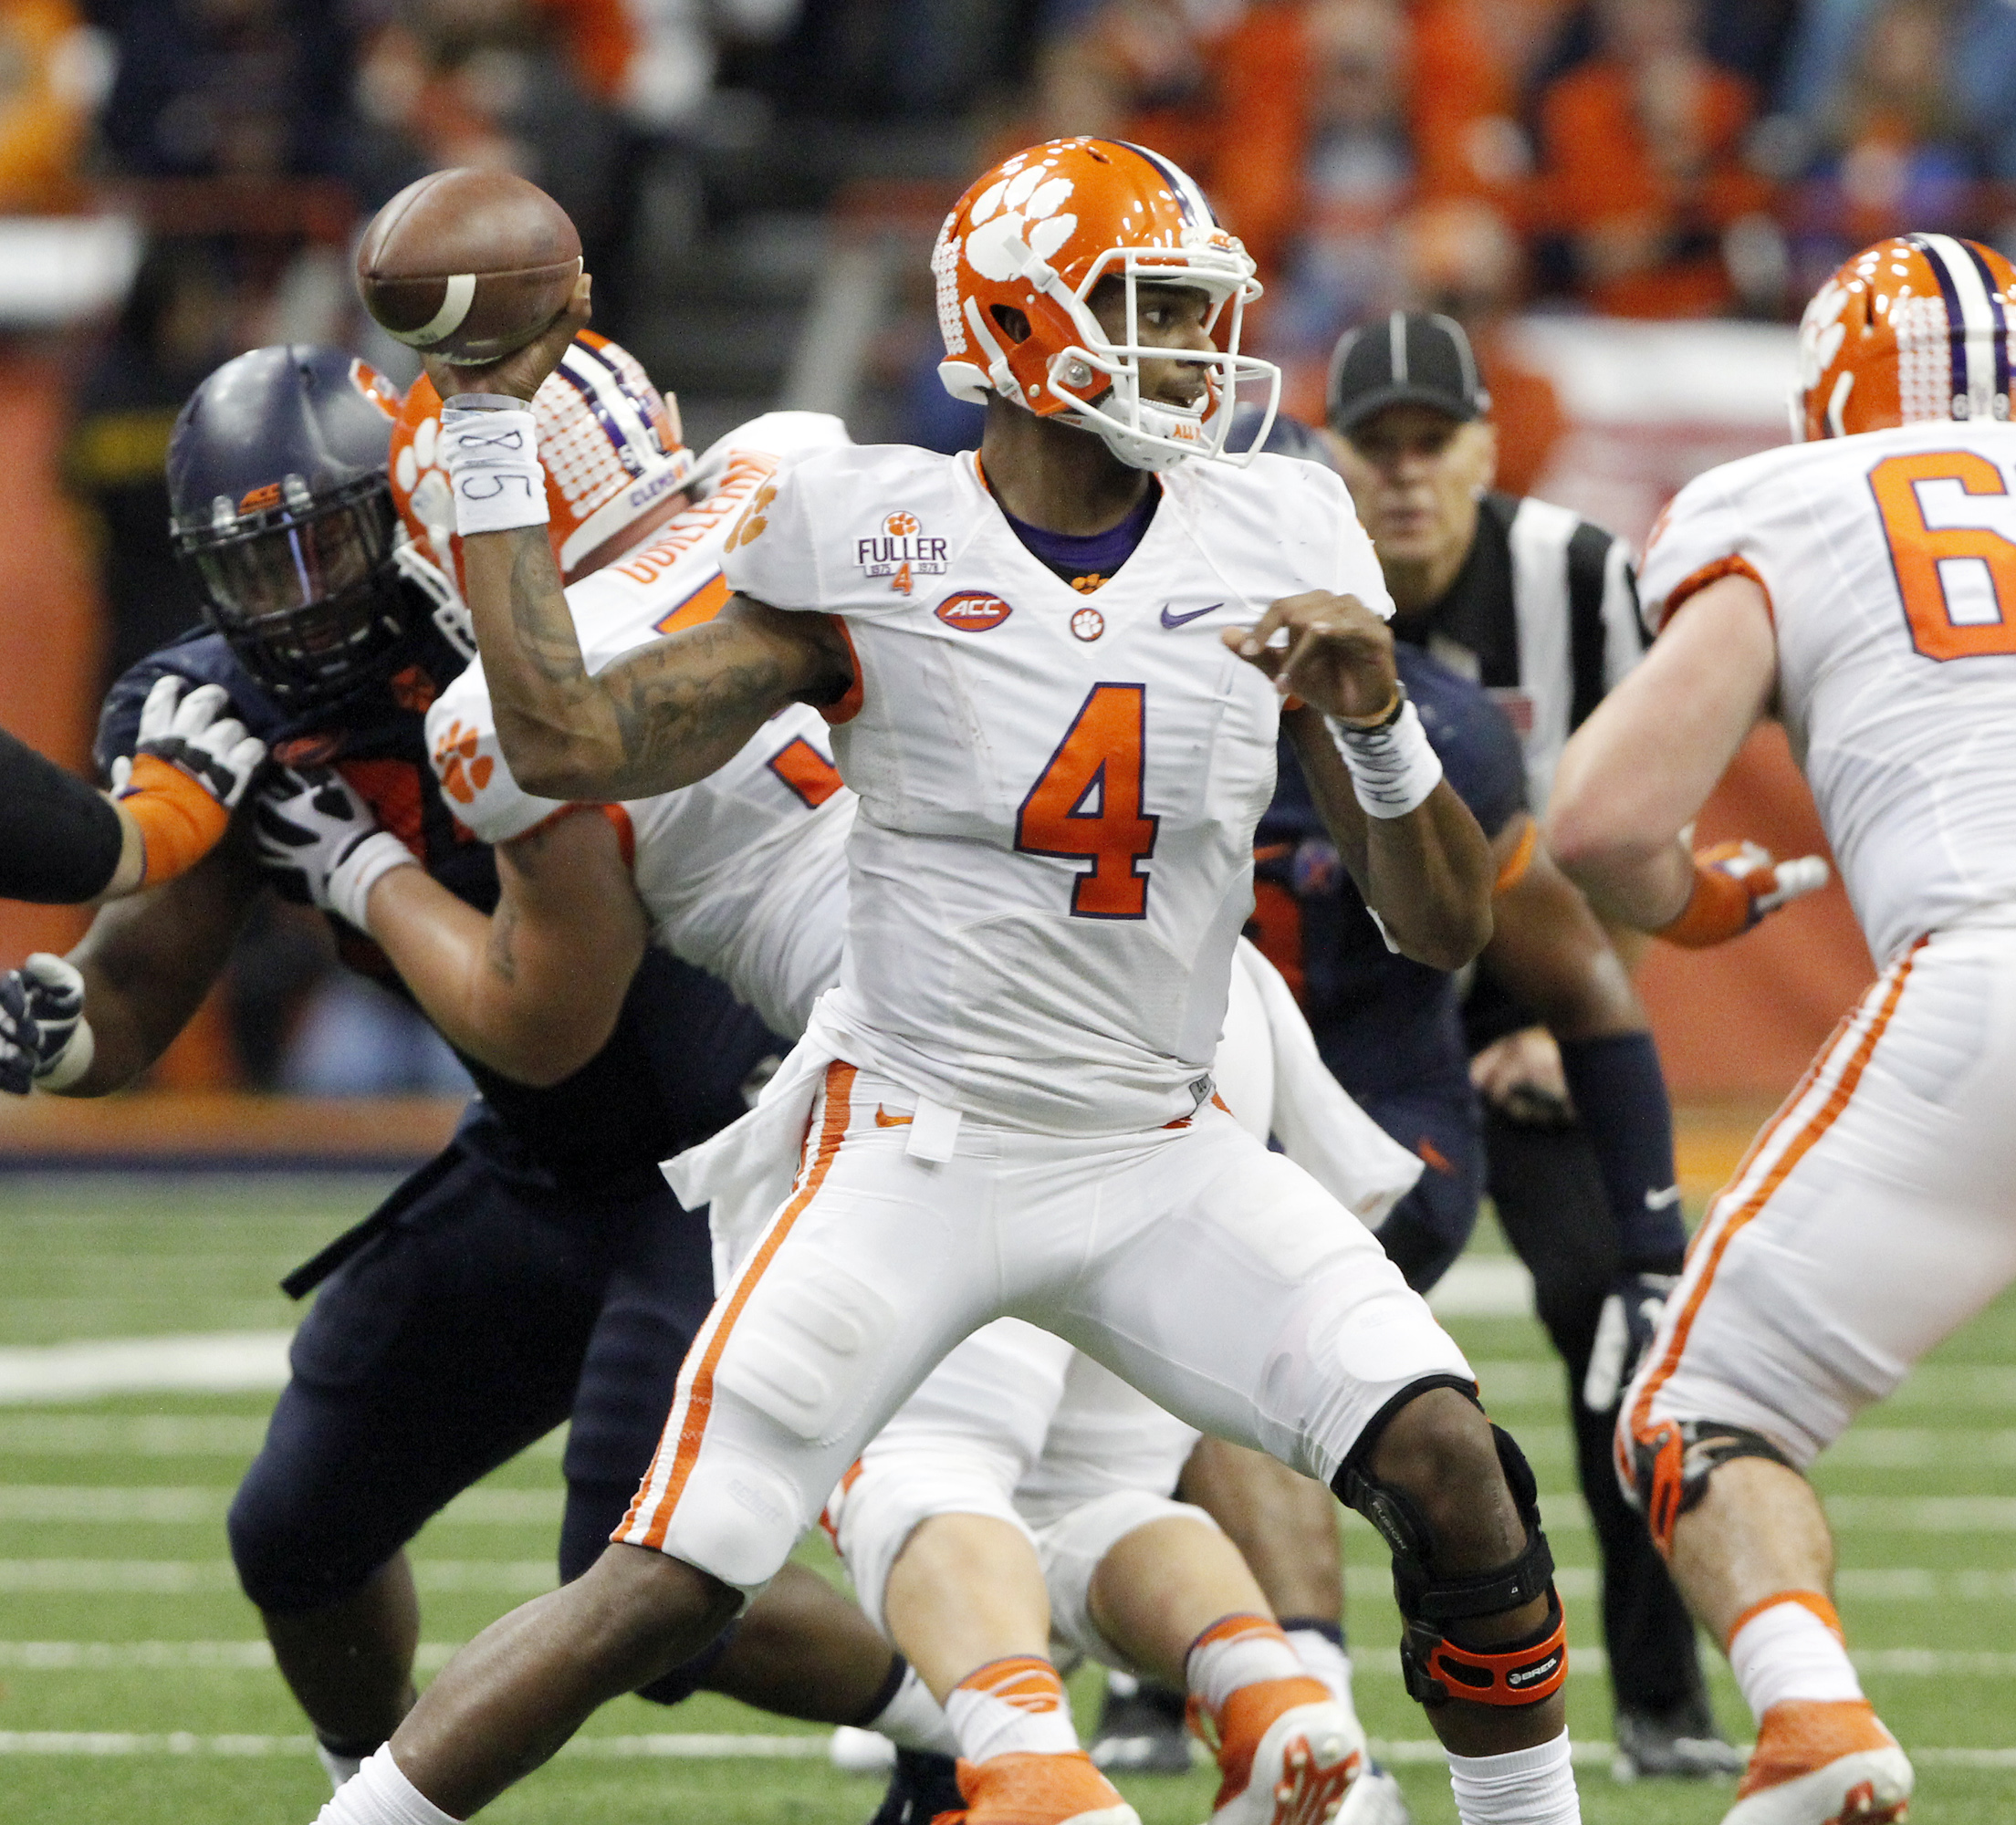 Clemson's Deshaun Watson throws a pass in the fourth quarter of an NCAA college football game against Syracuse in Syracuse, N.Y., Saturday, Nov. 14, 2015. Clemson won 37-27. (AP Photo/Nick Lisi)